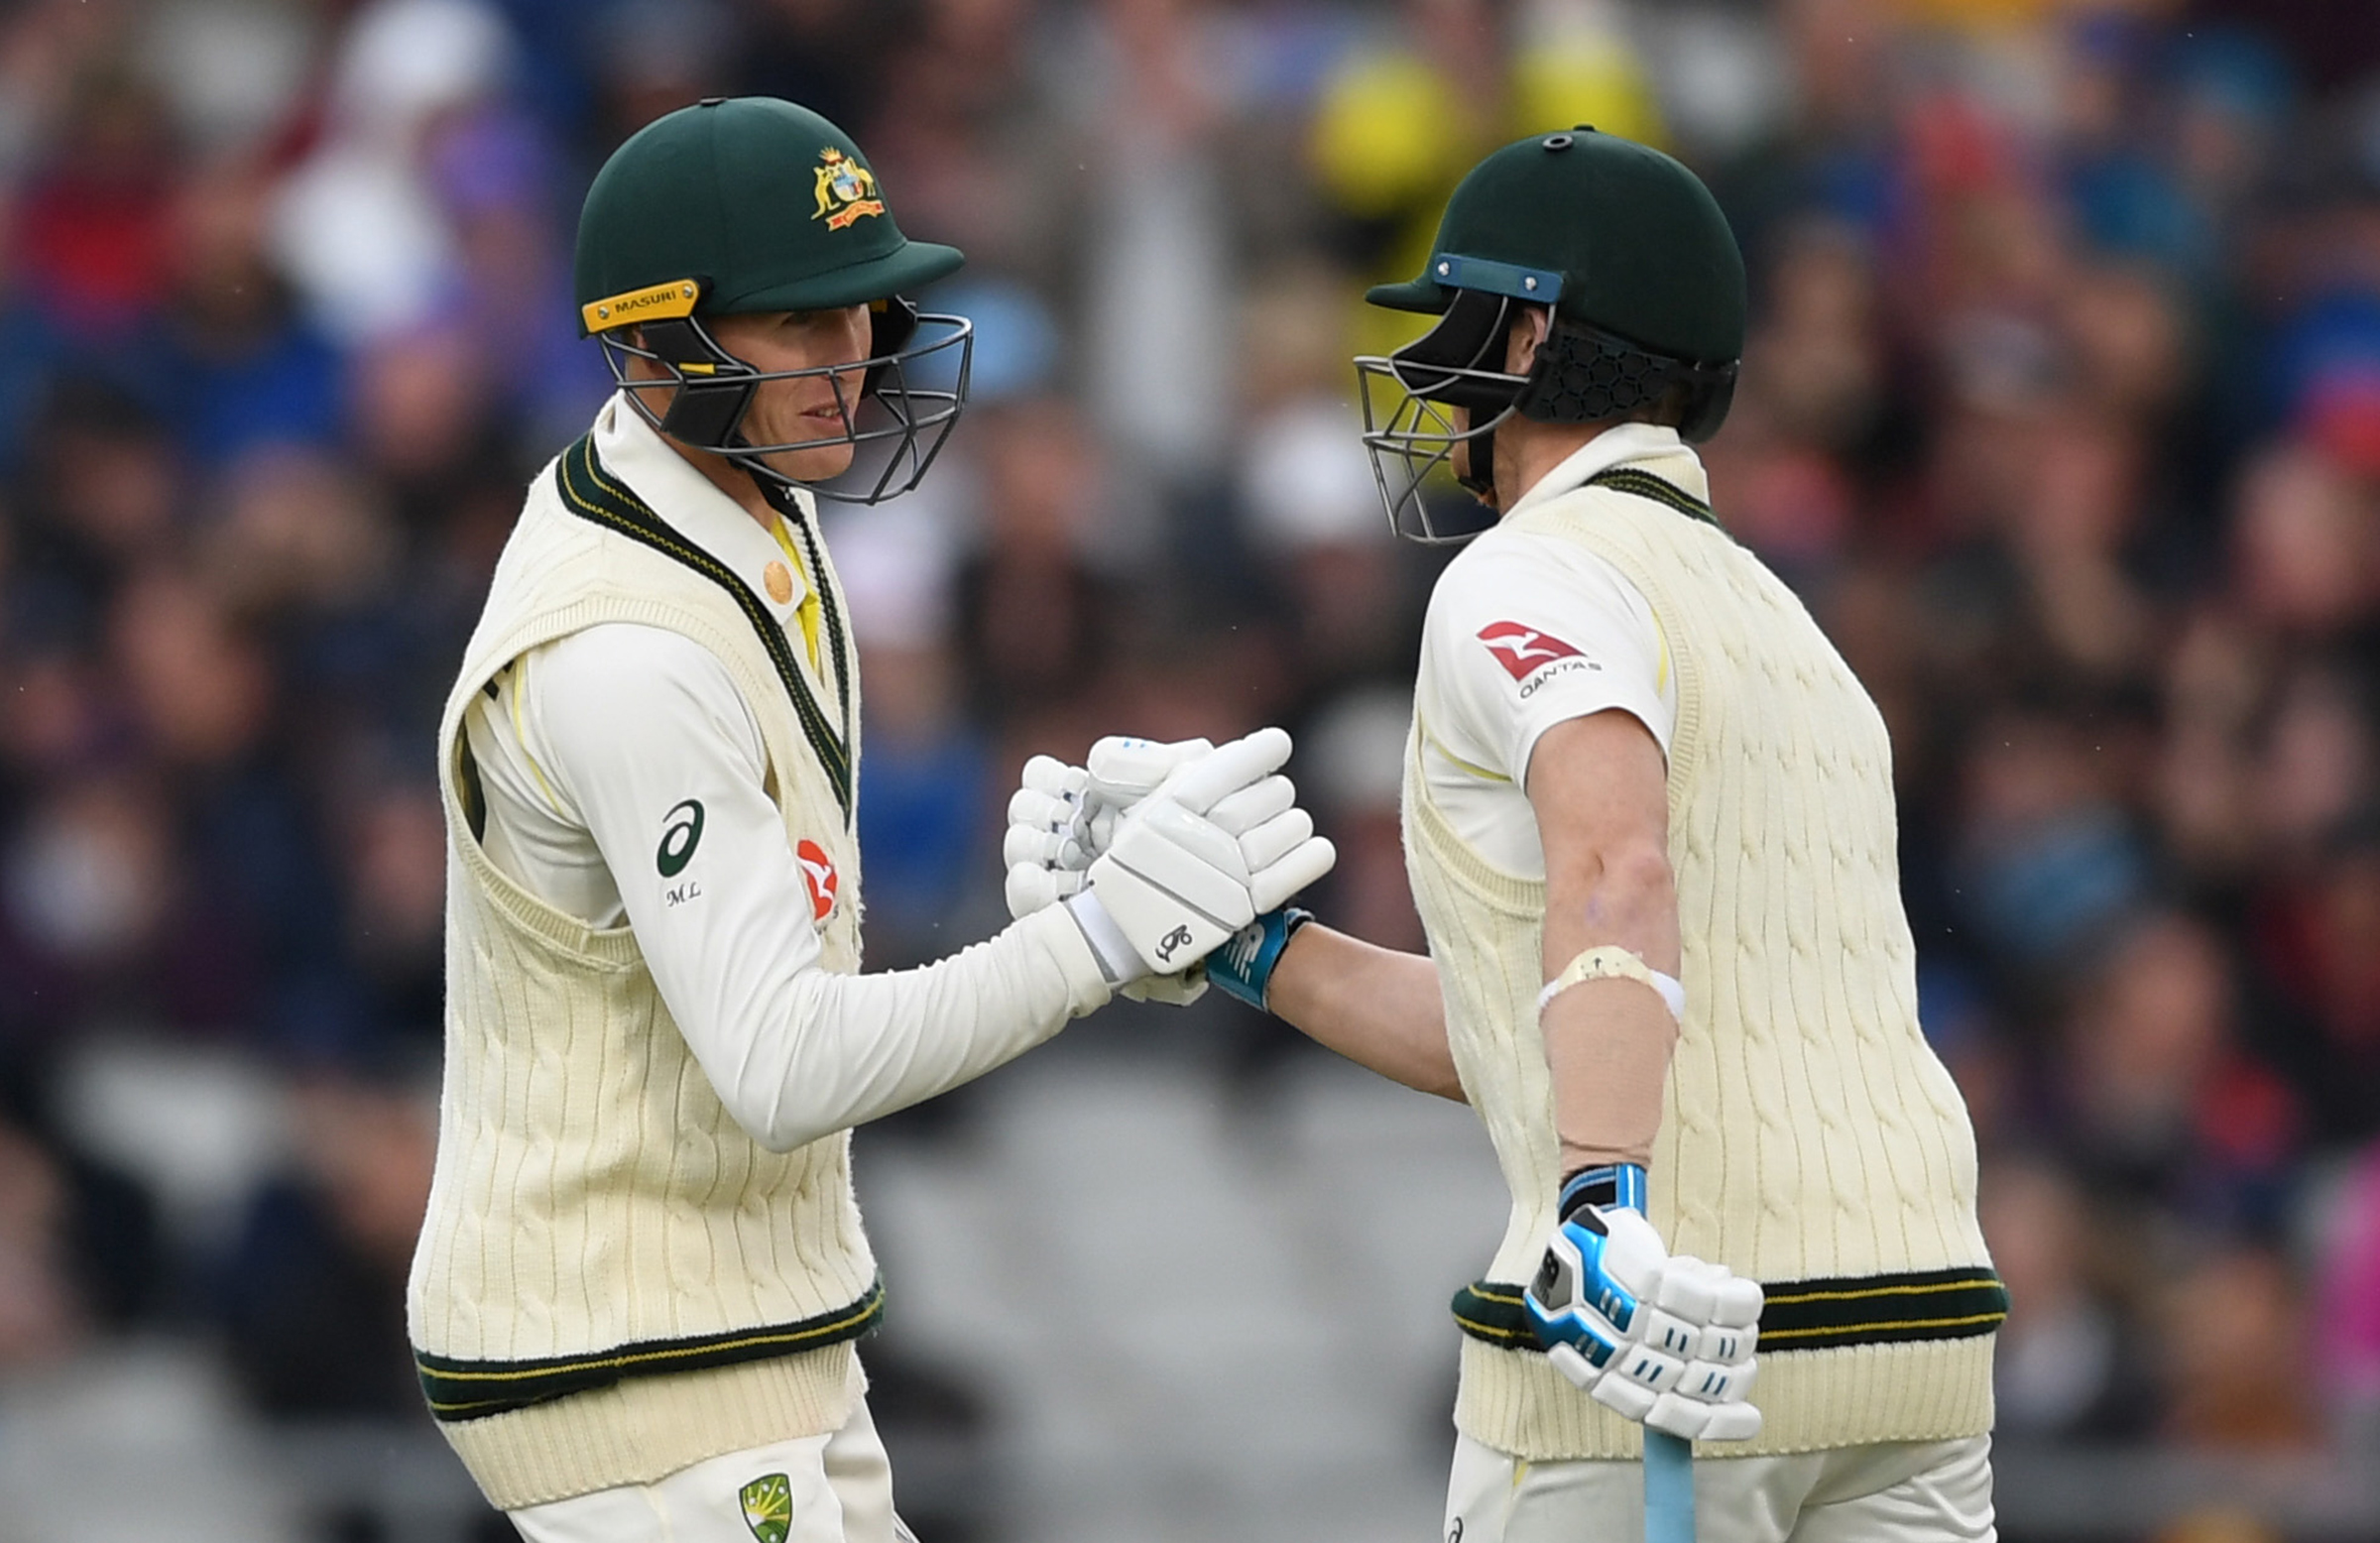 Smith (right) congratulates Labuschagne on his fourth straight fifty // Getty